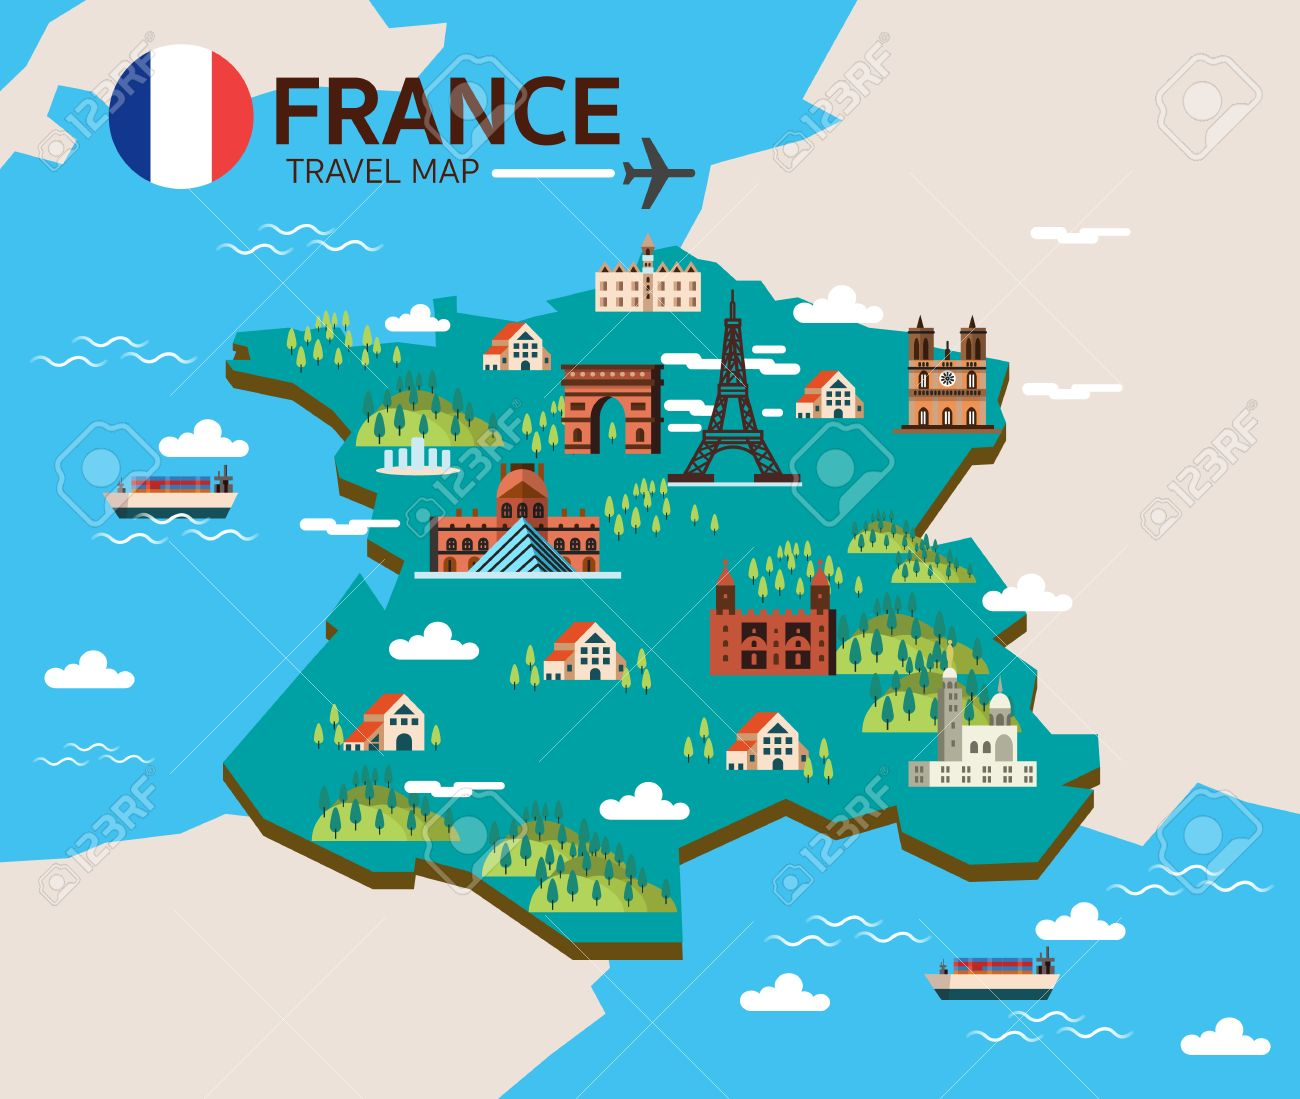 Clipart france map image royalty free download Collection of 14 free France clipart map aztec clipart vintage ... image royalty free download